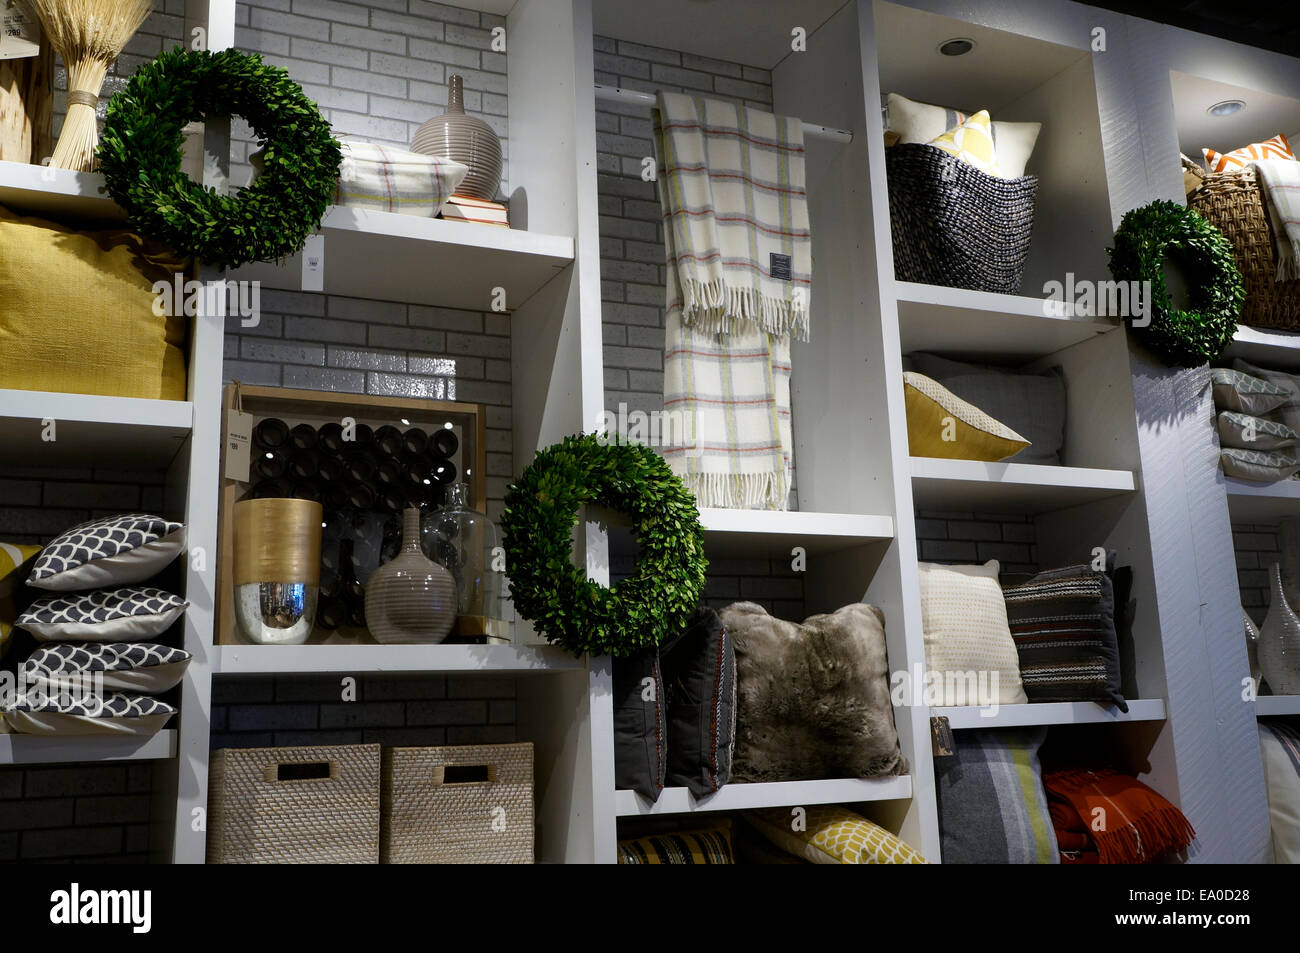 Christmas home decor display in a store - Stock Image